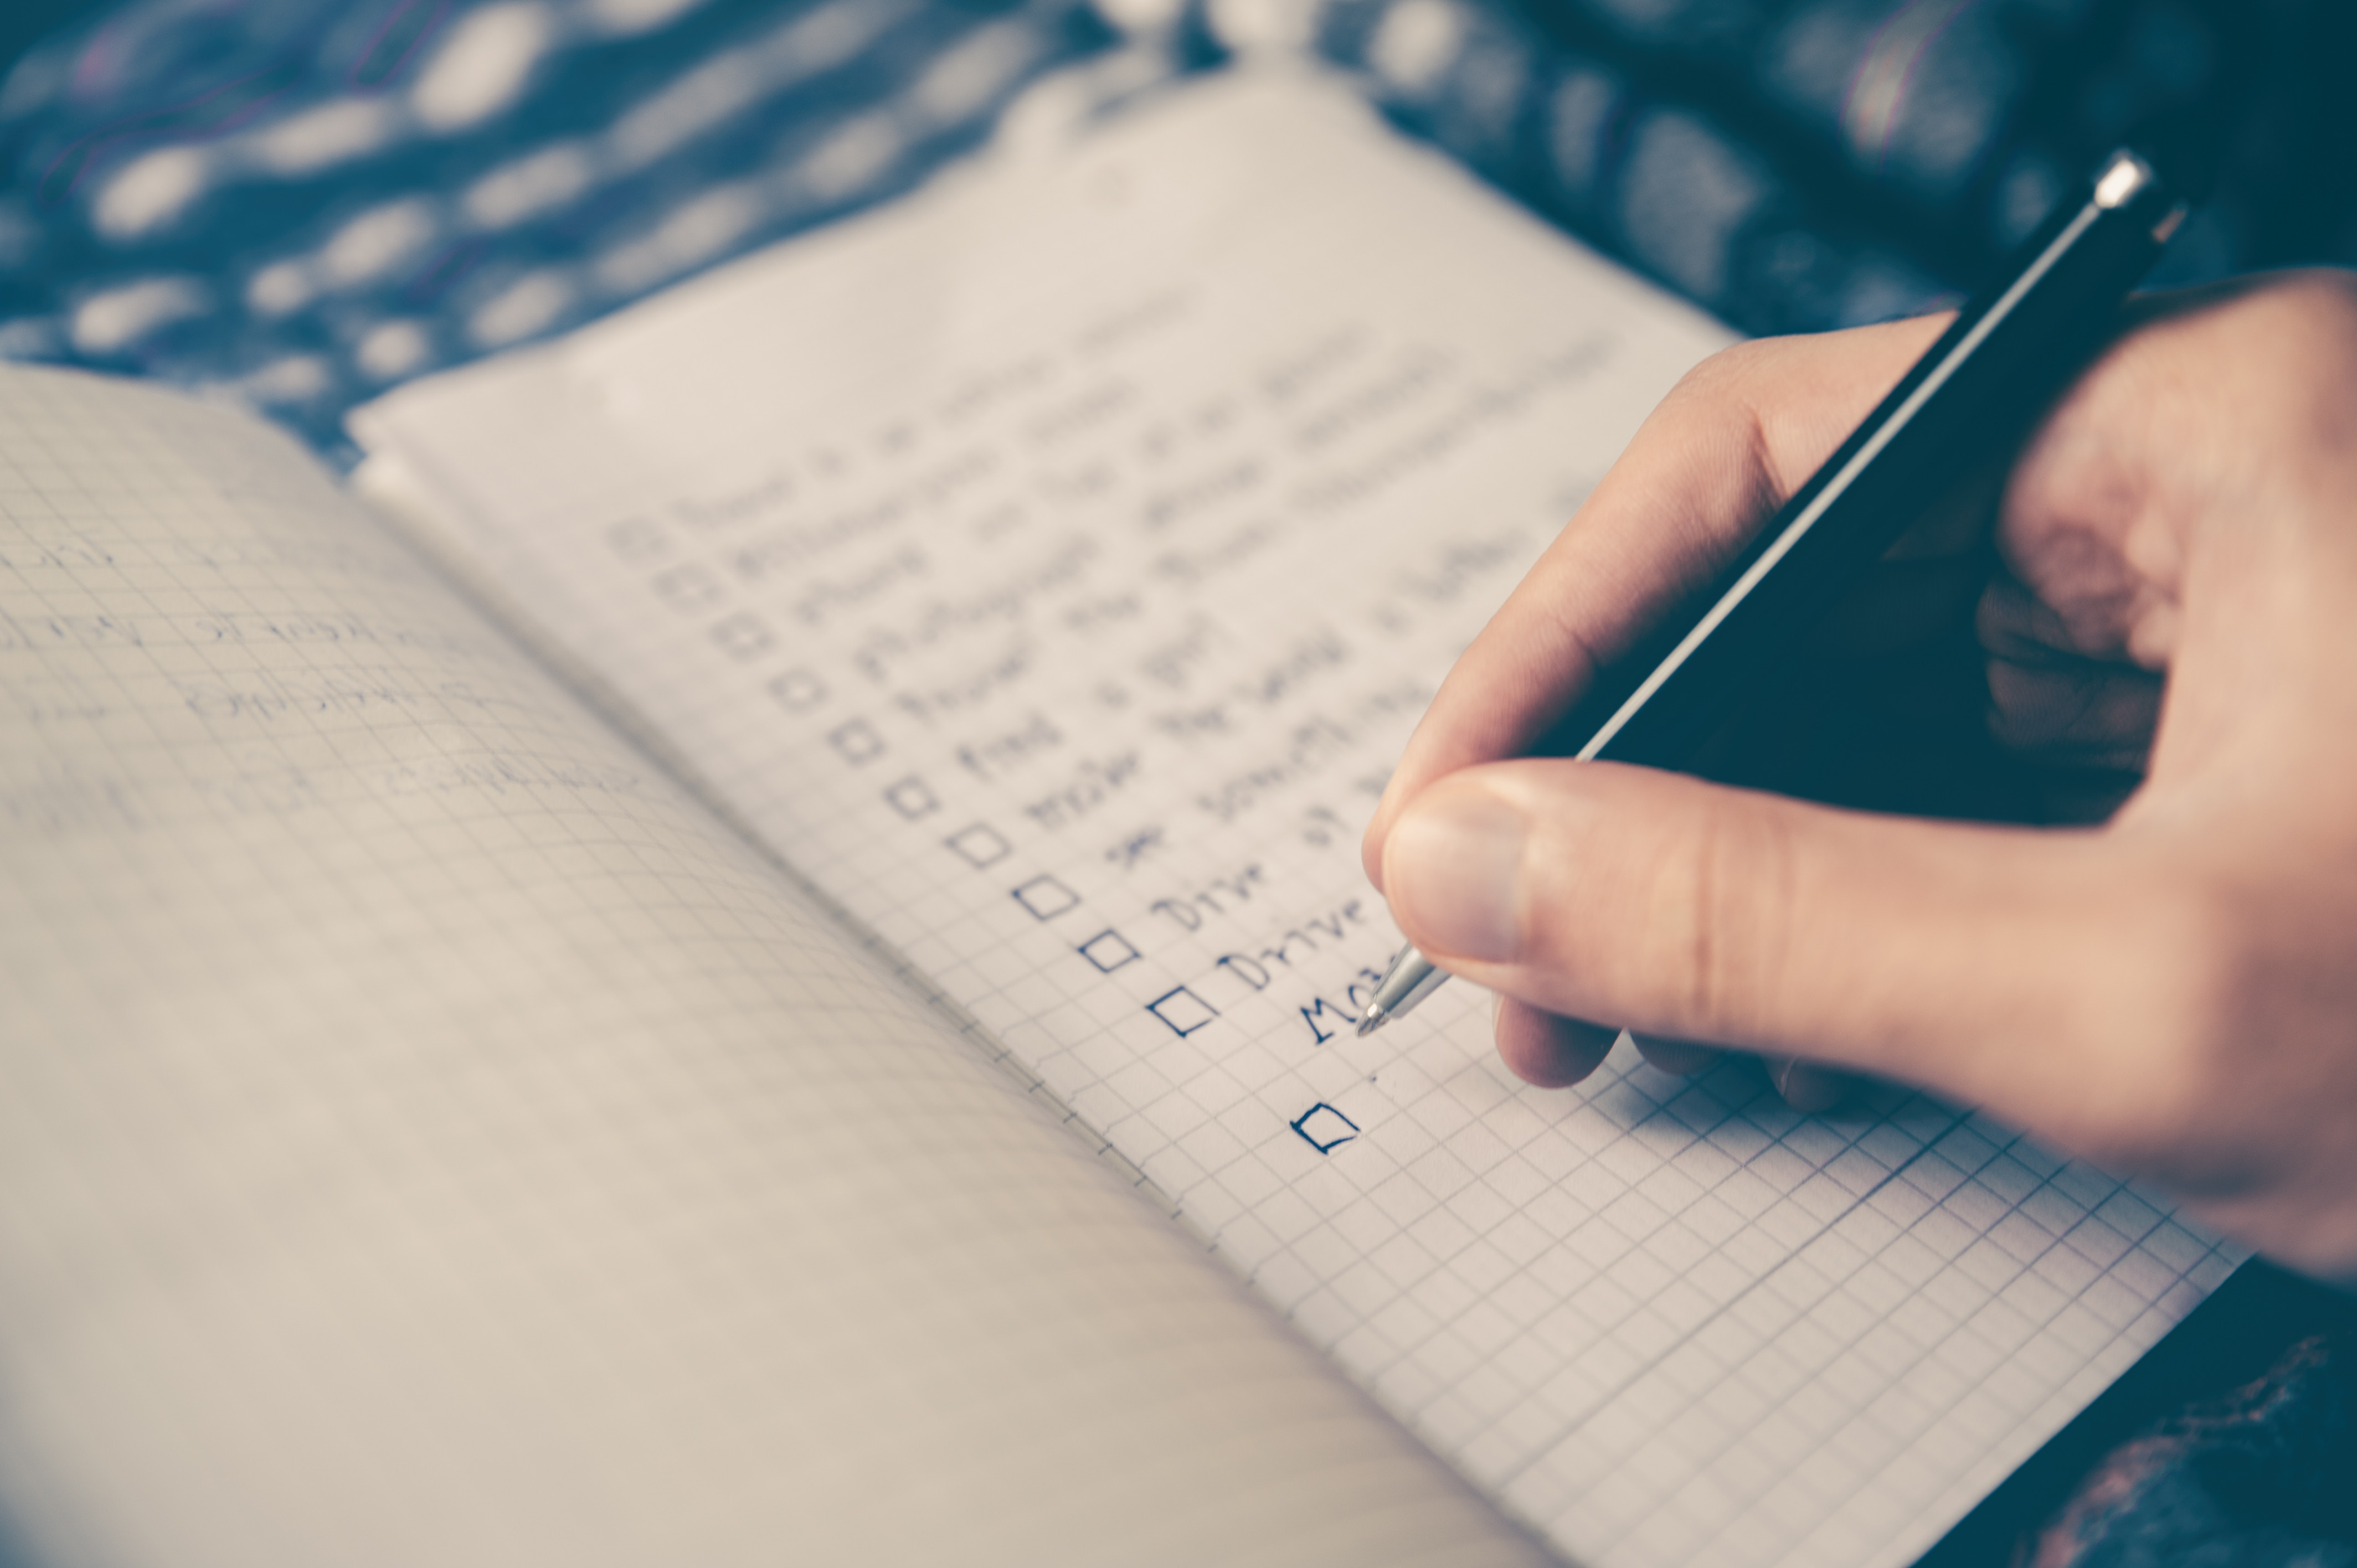 Checklist with pen and paper